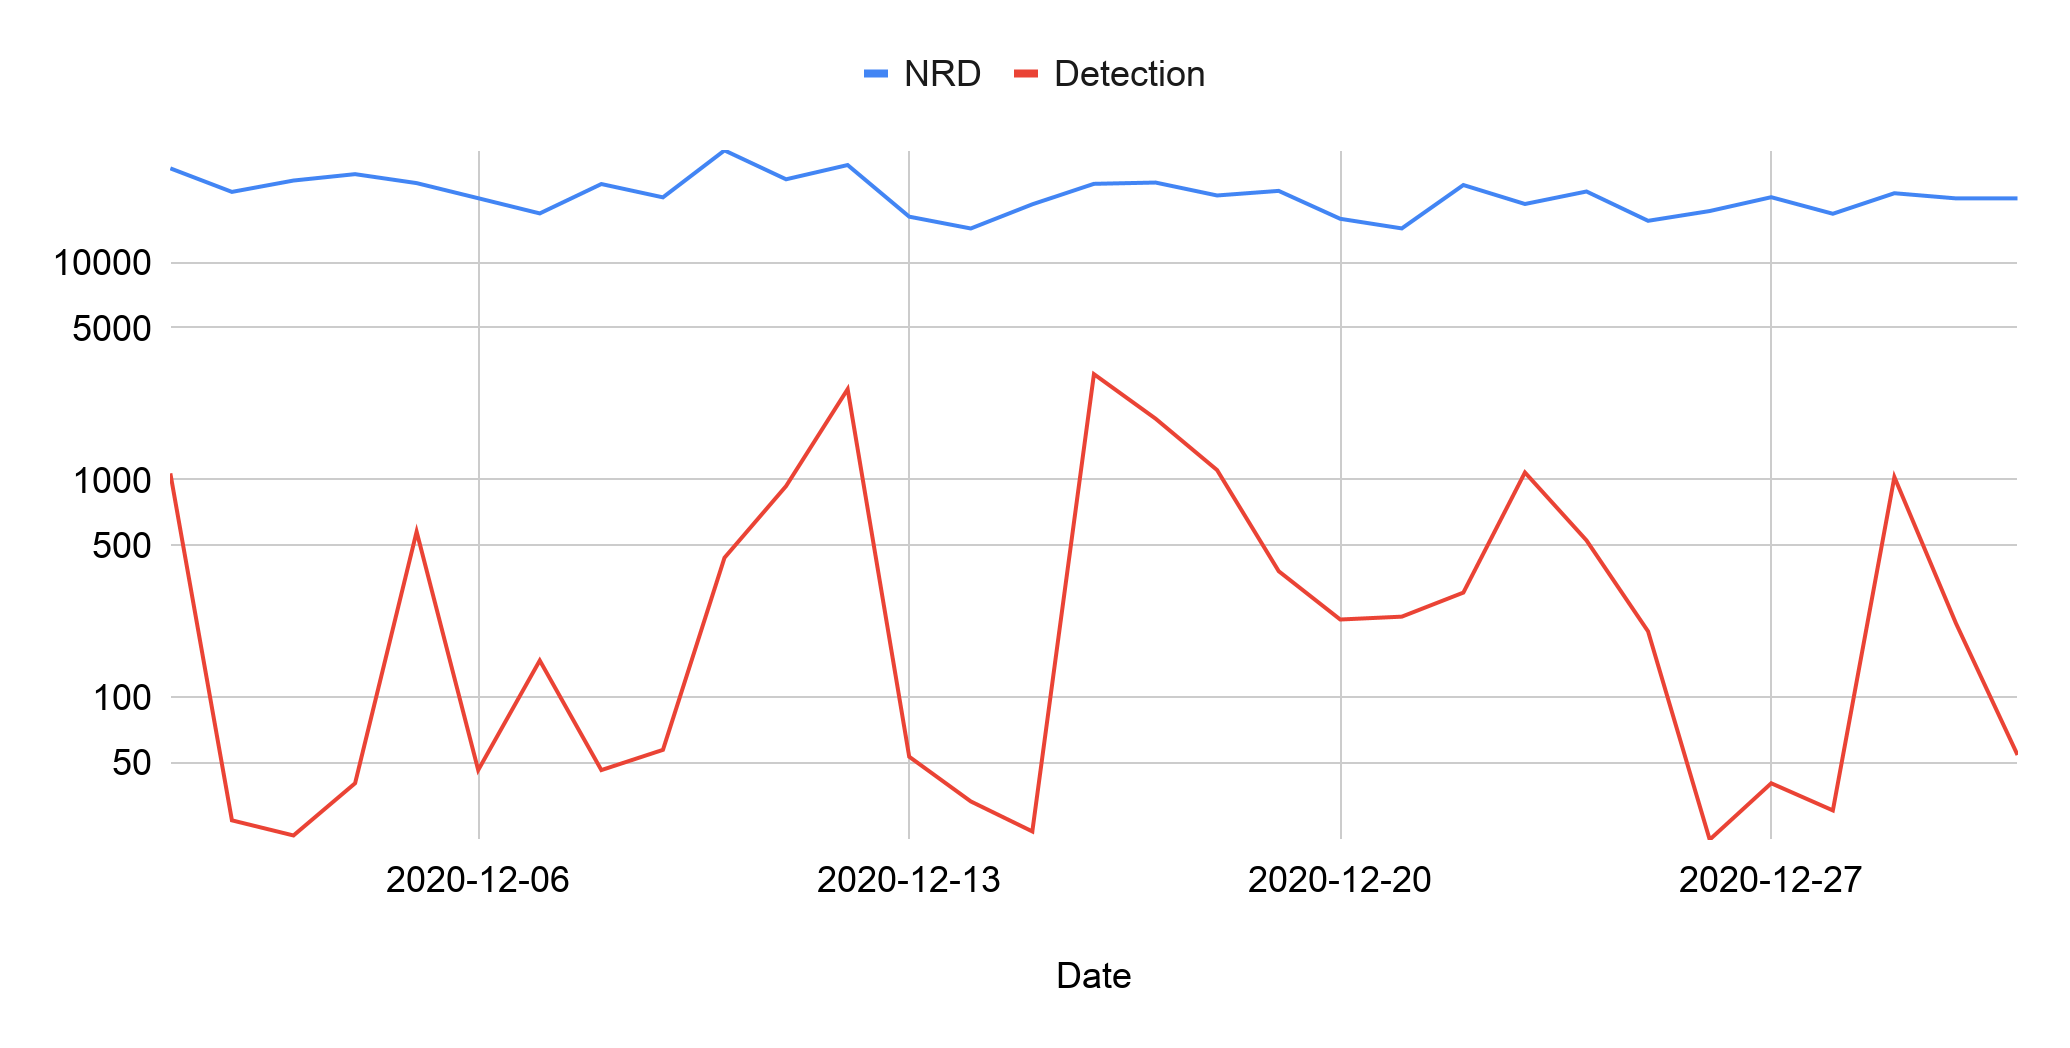 The blue line indicates daily newly registered domains and the red line indicates detection of malicious activity.